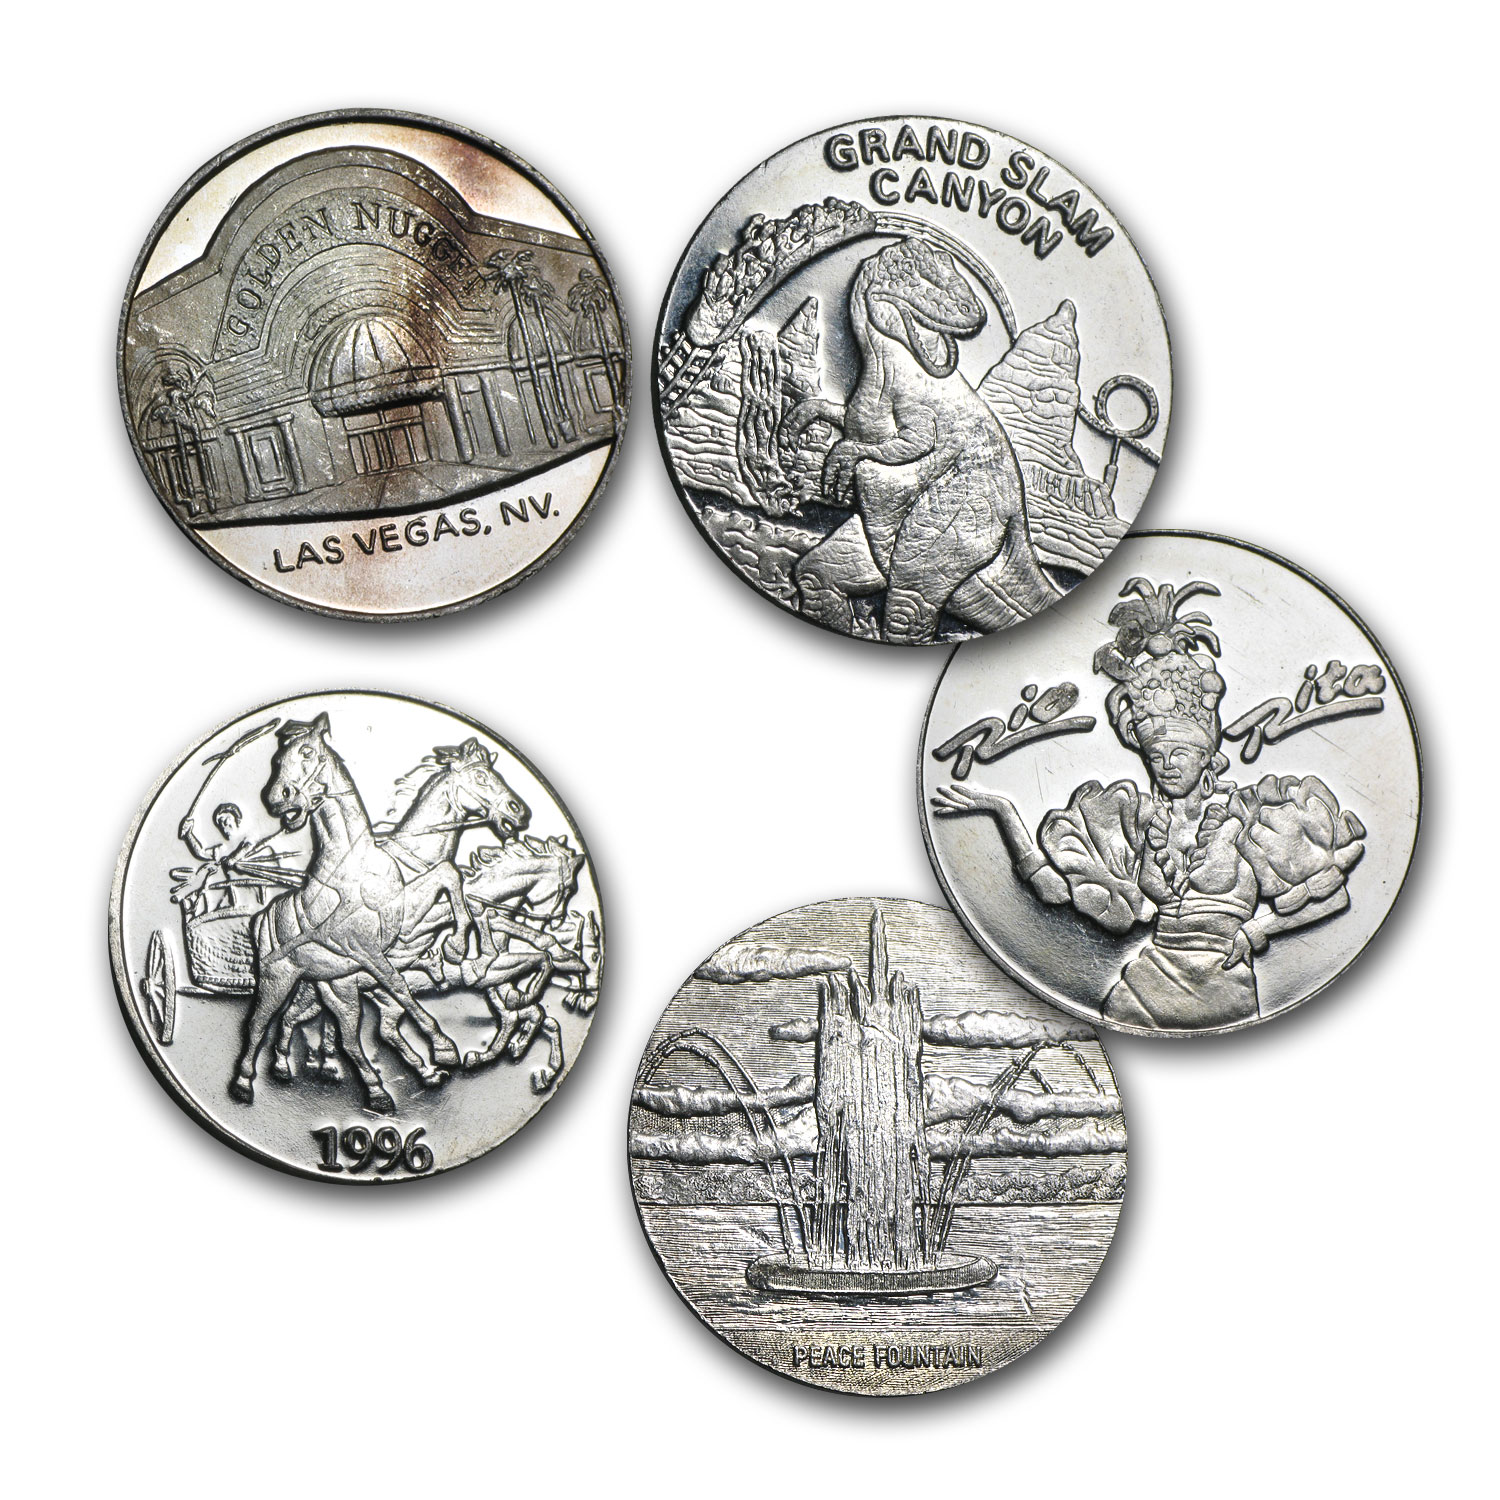 1/2 oz Silver Rounds - Gaming/Casino Token Knockouts